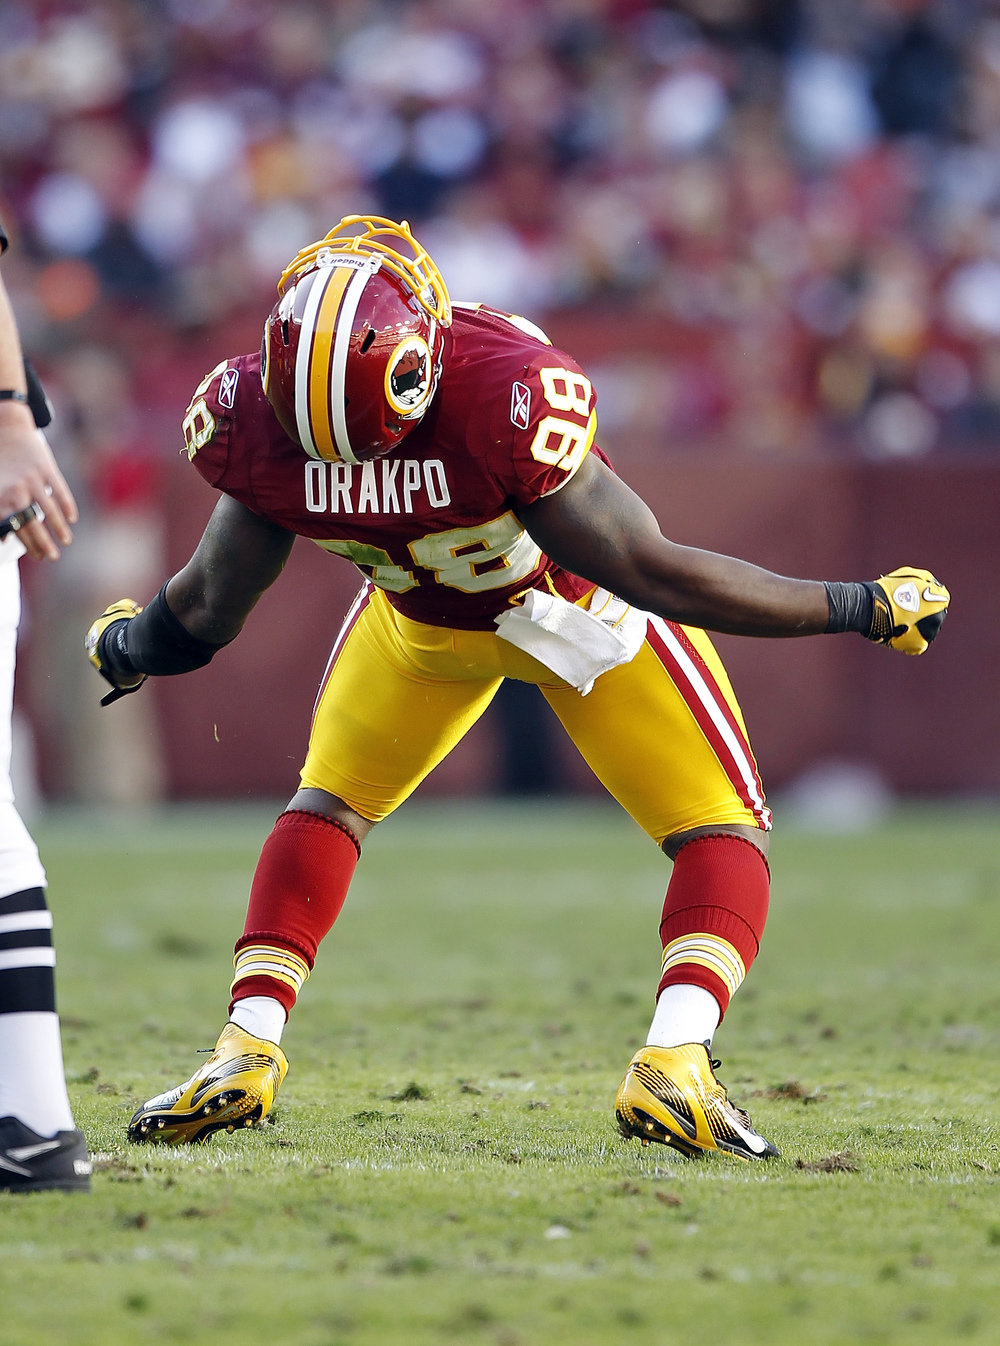 Outside linebacker Brian Orakpo has 29.5 careers sacks in 49 career games played.